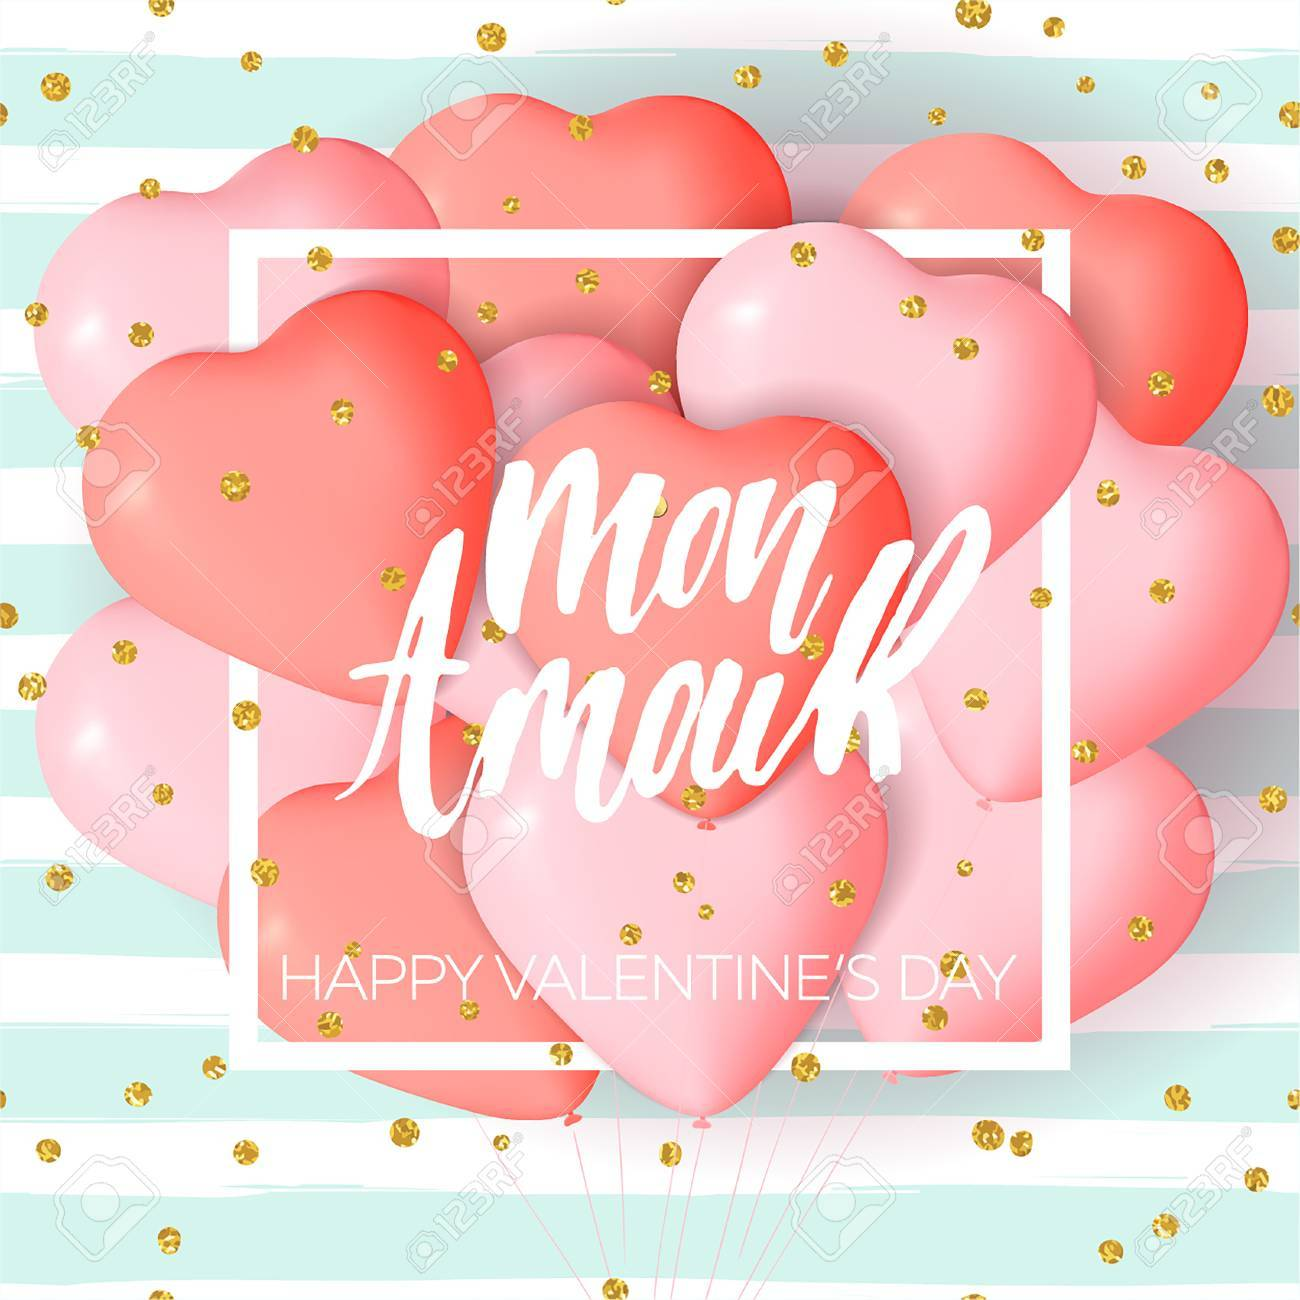 happy valentines day card template with cute and fancy pink red heart balloons with lettering